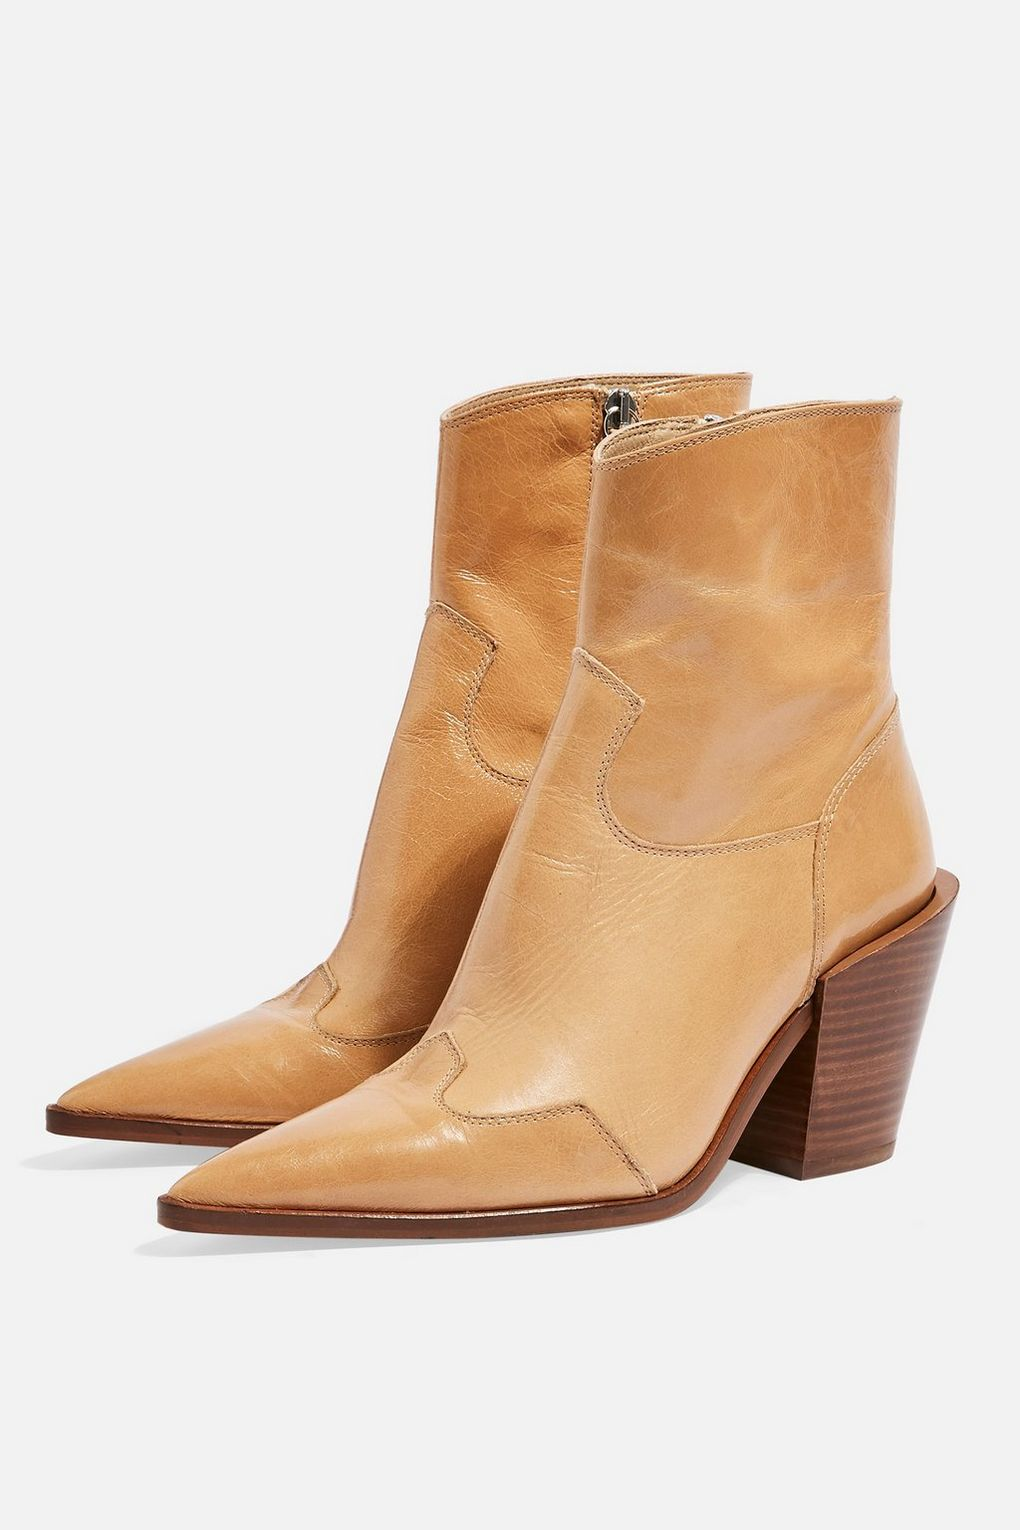 HOWDIE High Ankle Boots - Boots - Shoes